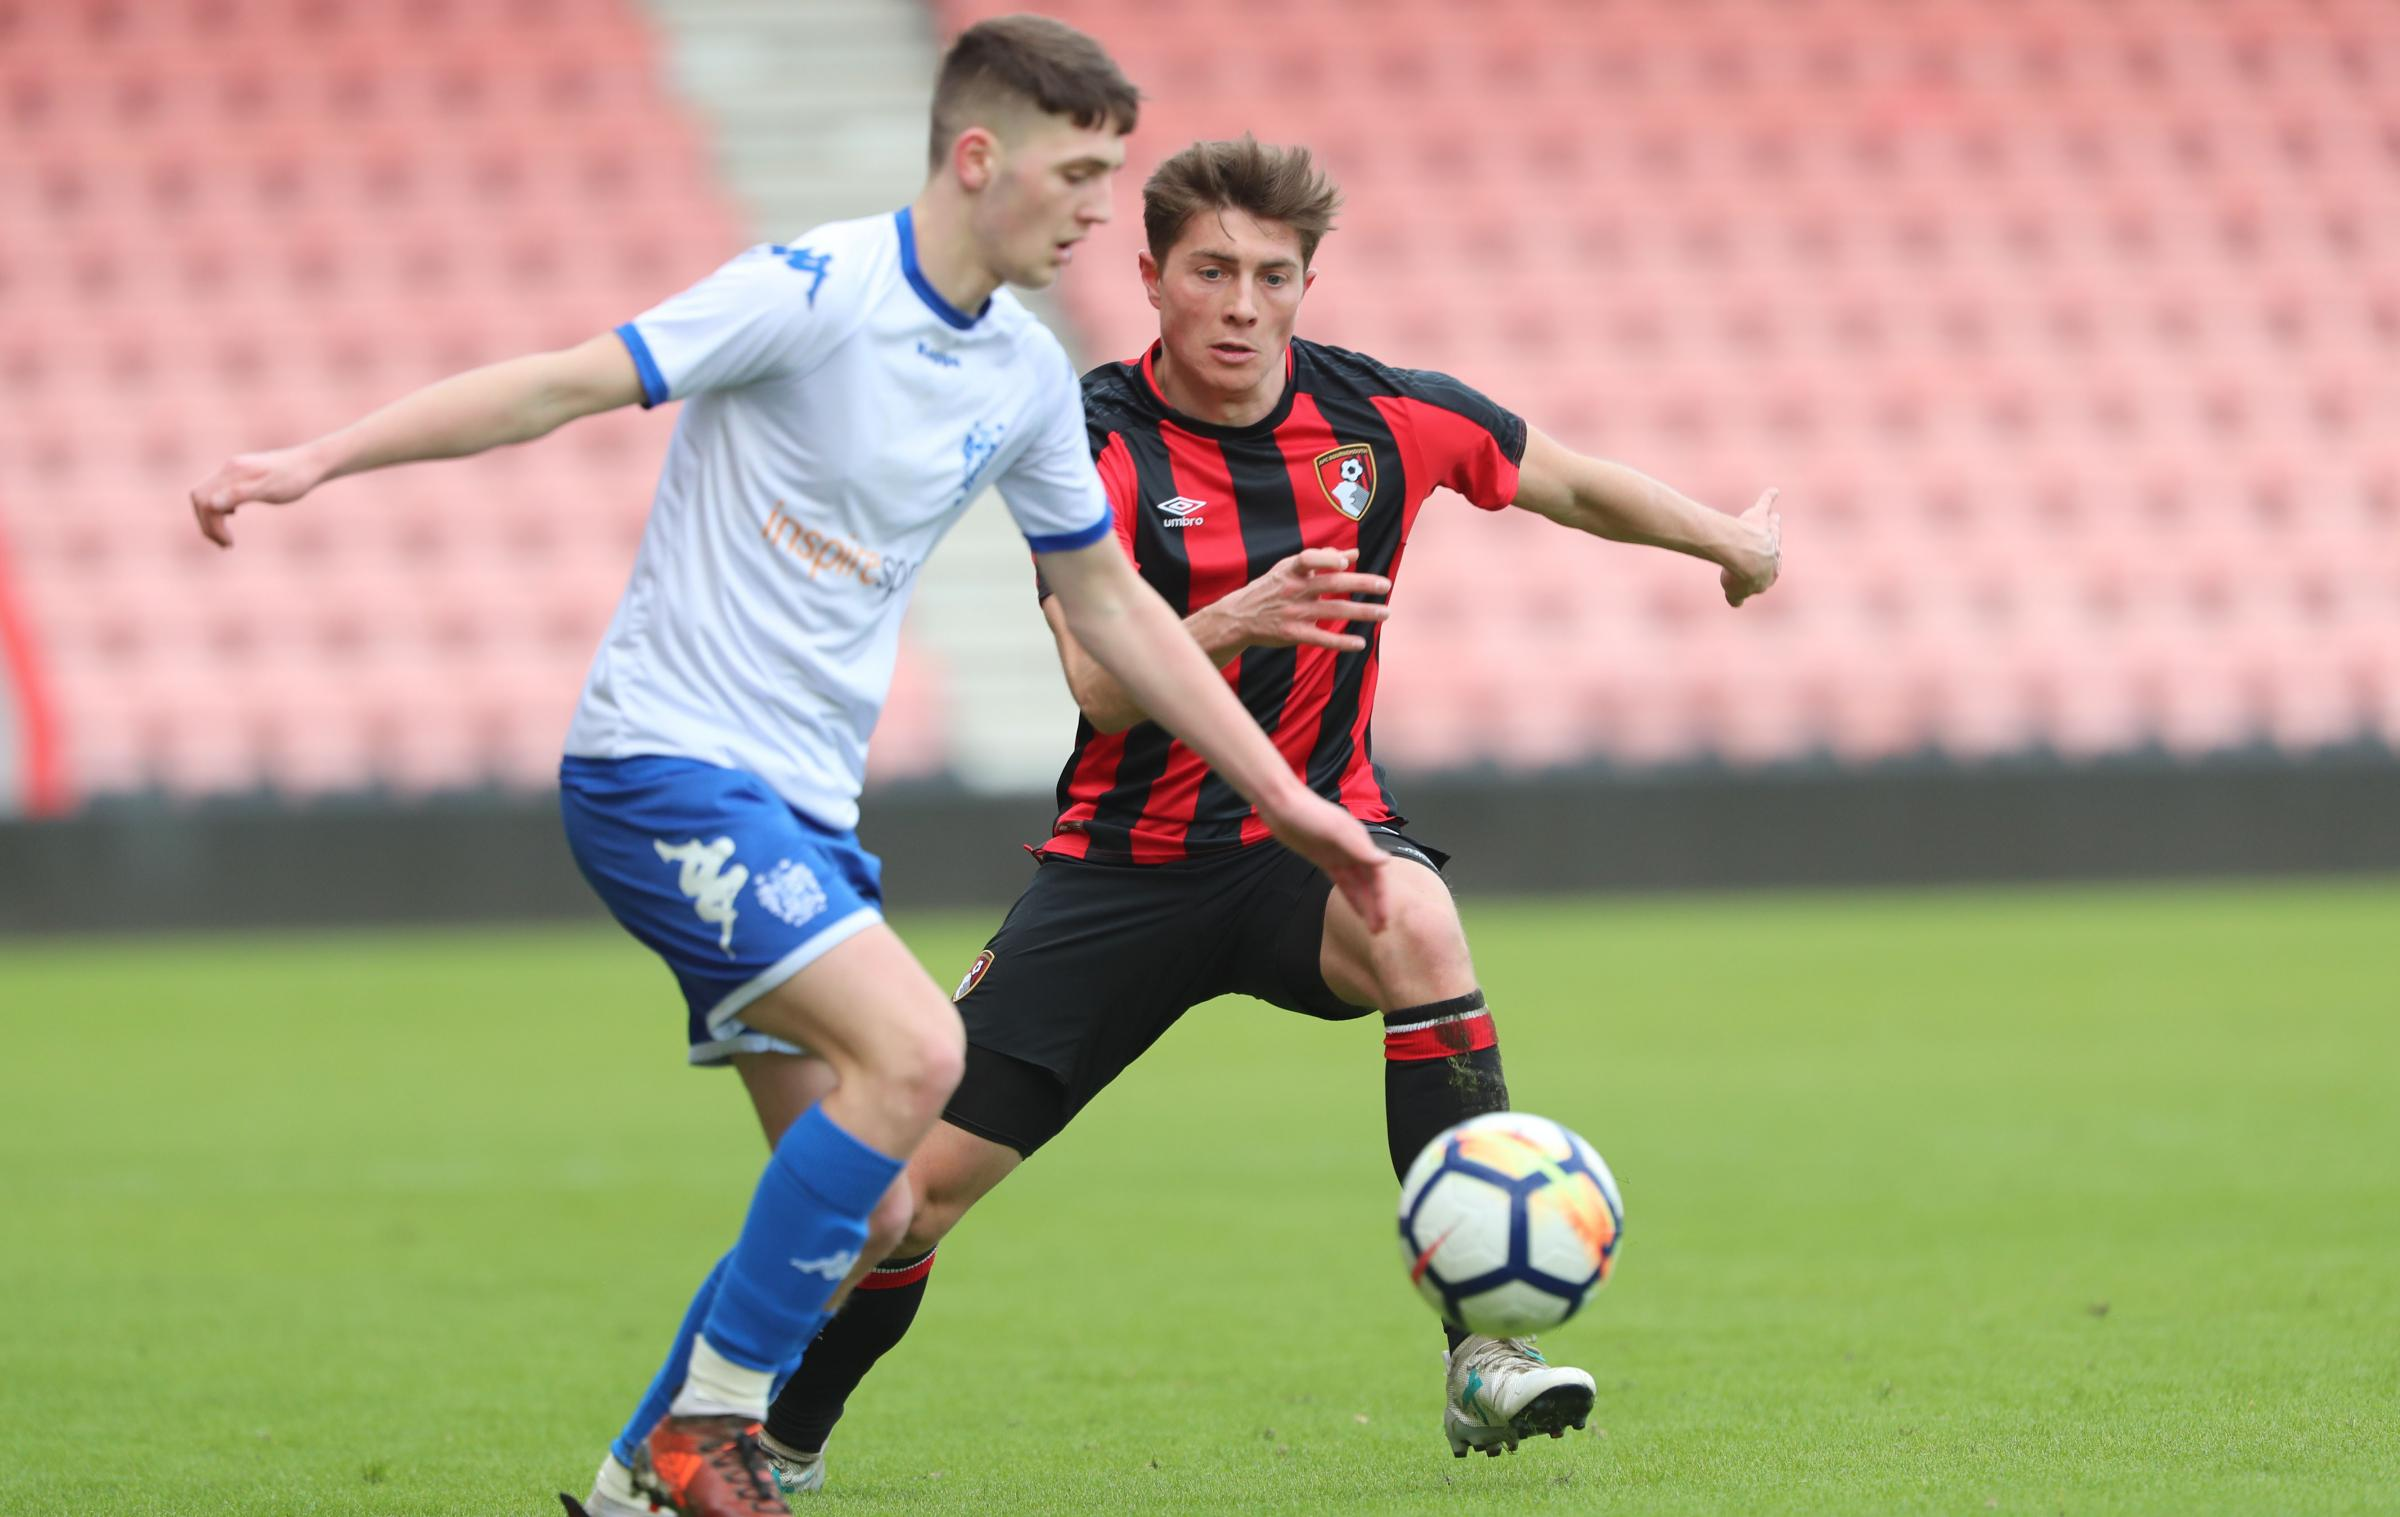 NEW RECRUIT: Wimborne Town have snapped up former Cherries youngster Jordan Lee